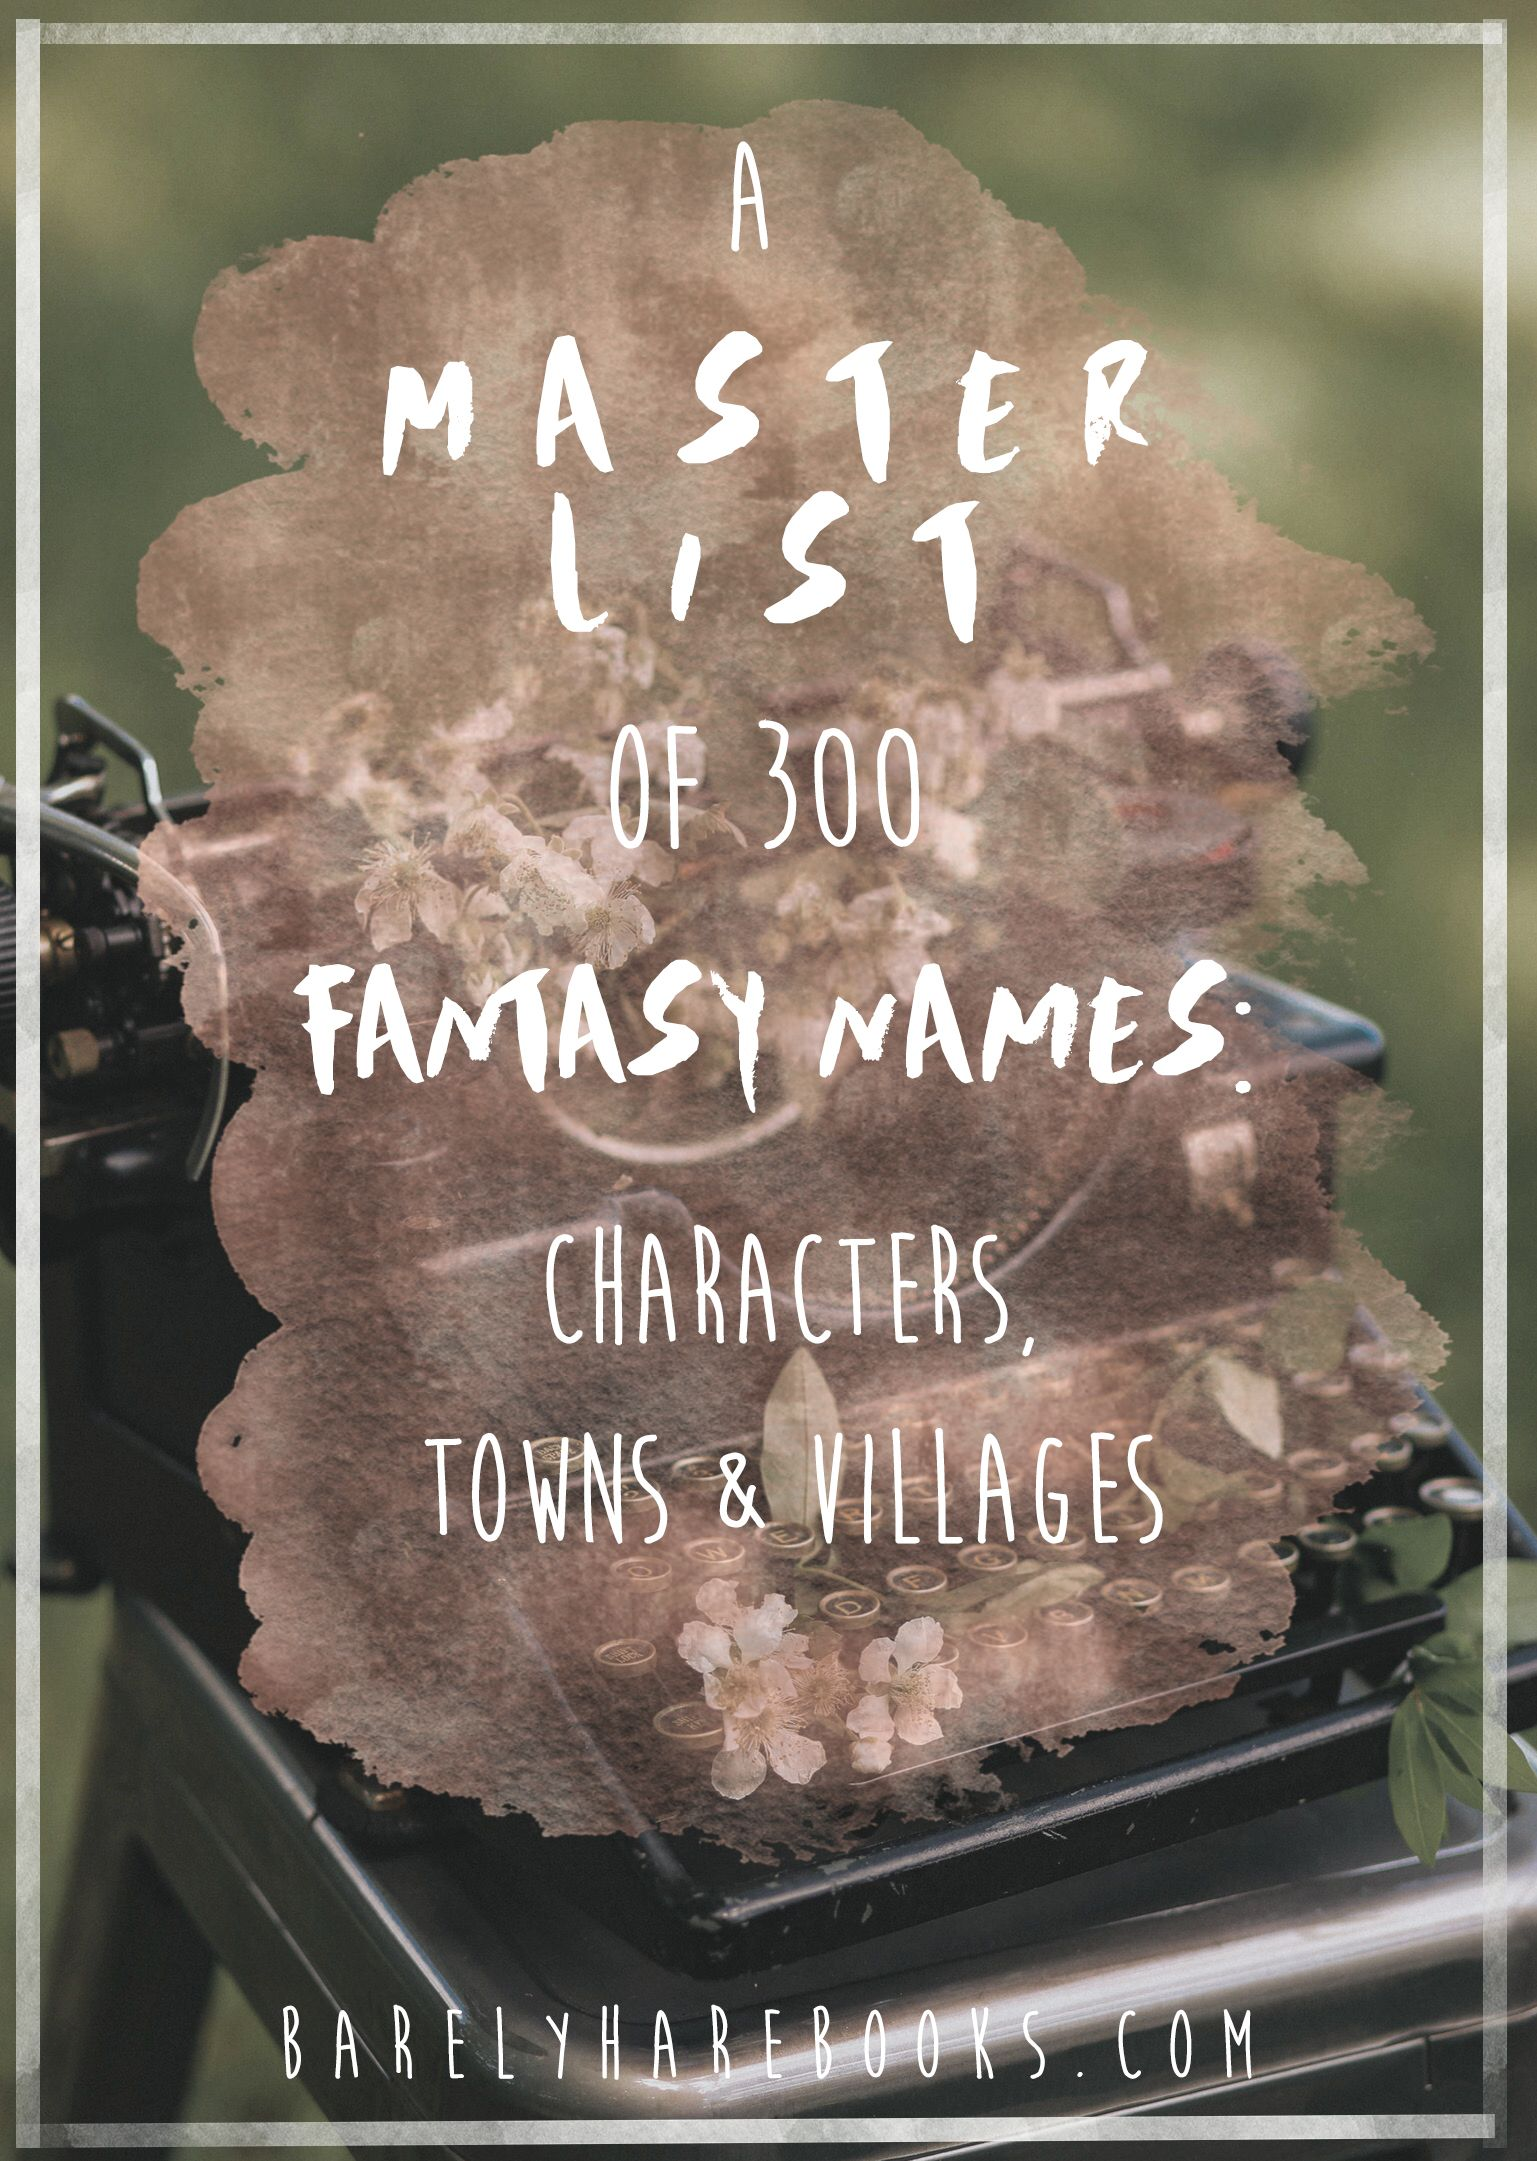 A Master List of 300 Fantasy Names Characters, Towns and